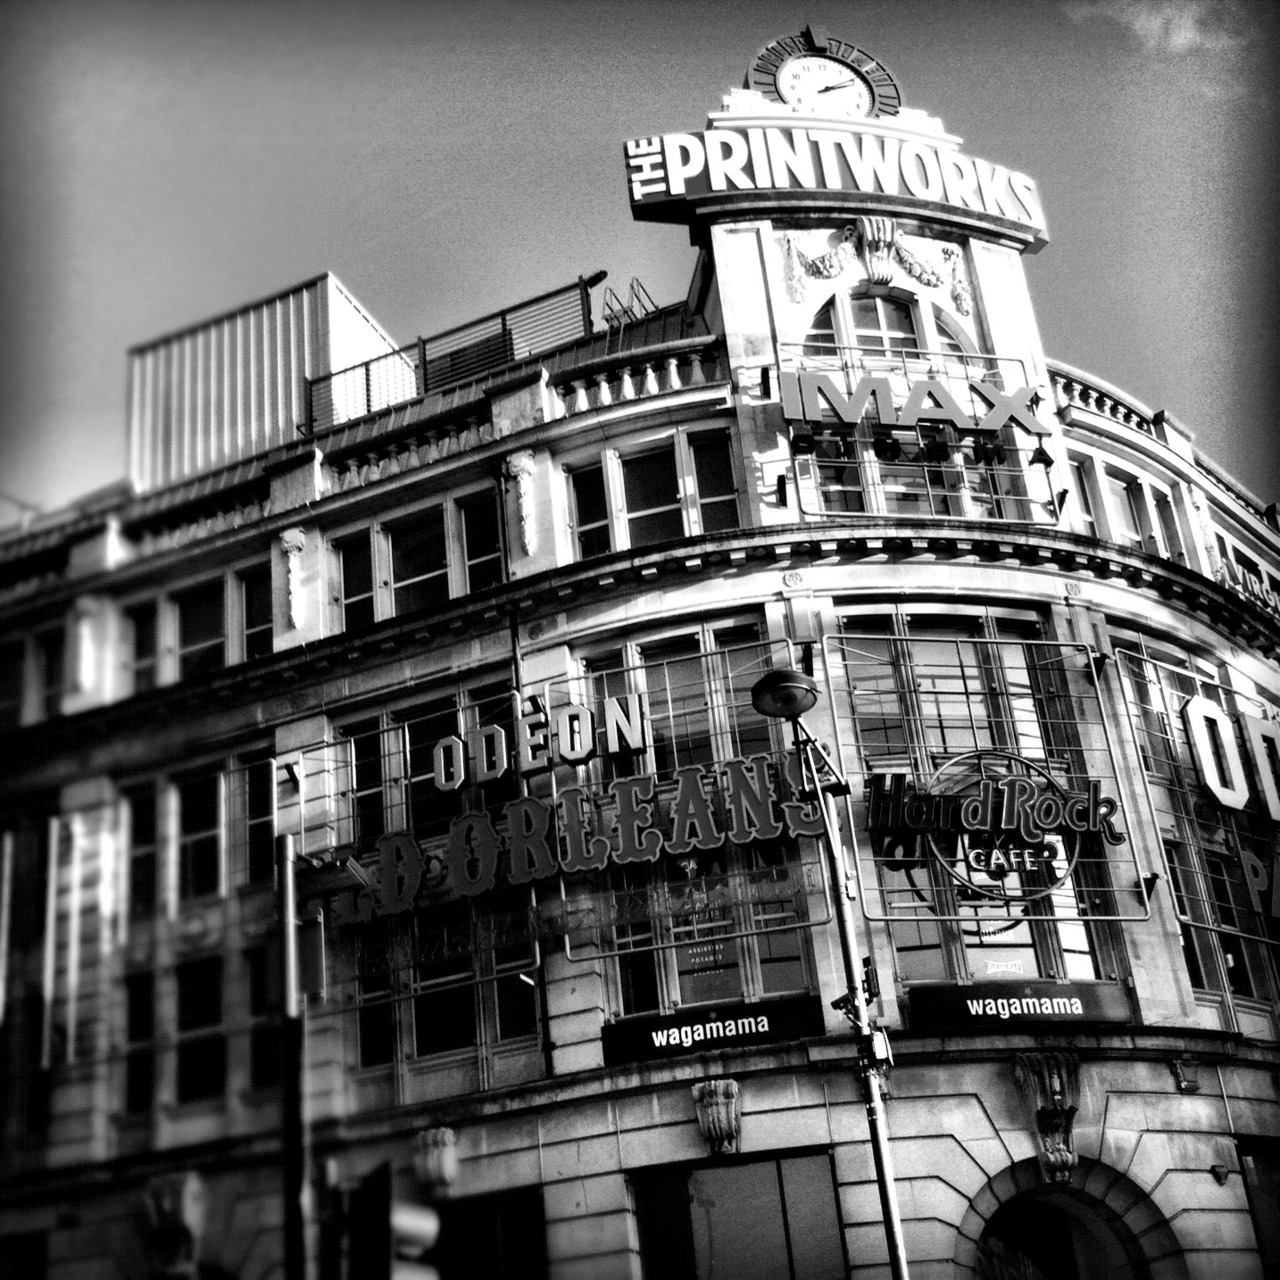 xstexiphoneography:  The Printworks Manchester by Stephen Robinson